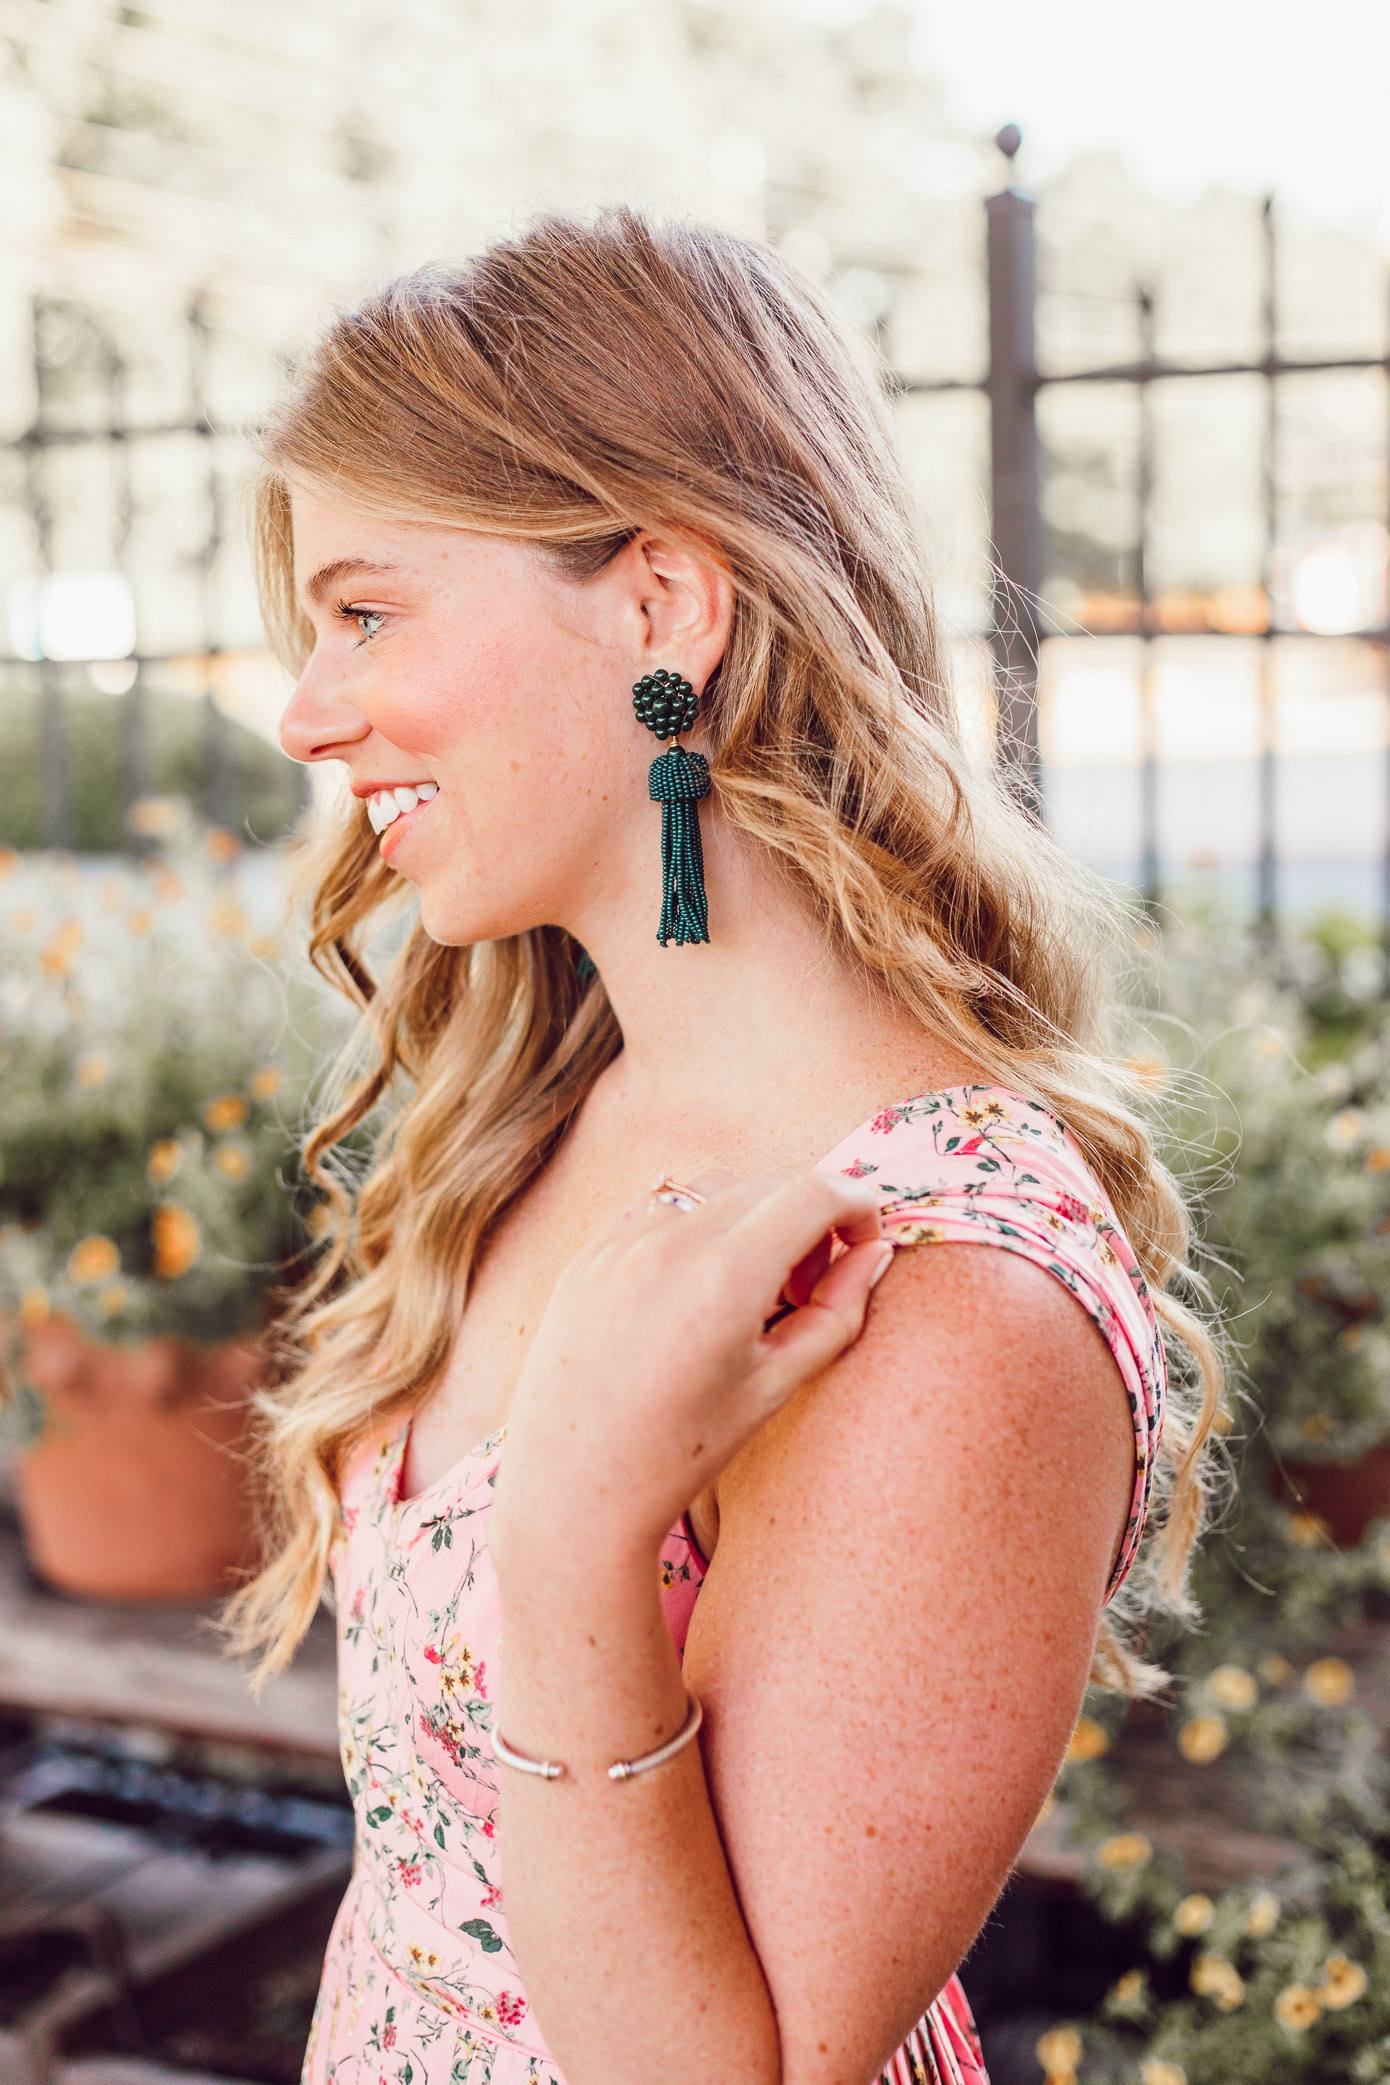 Green Tassel Earrings + Pink Floral Sundress for Every Occasion styled on Louella Reese Life & Style Blog